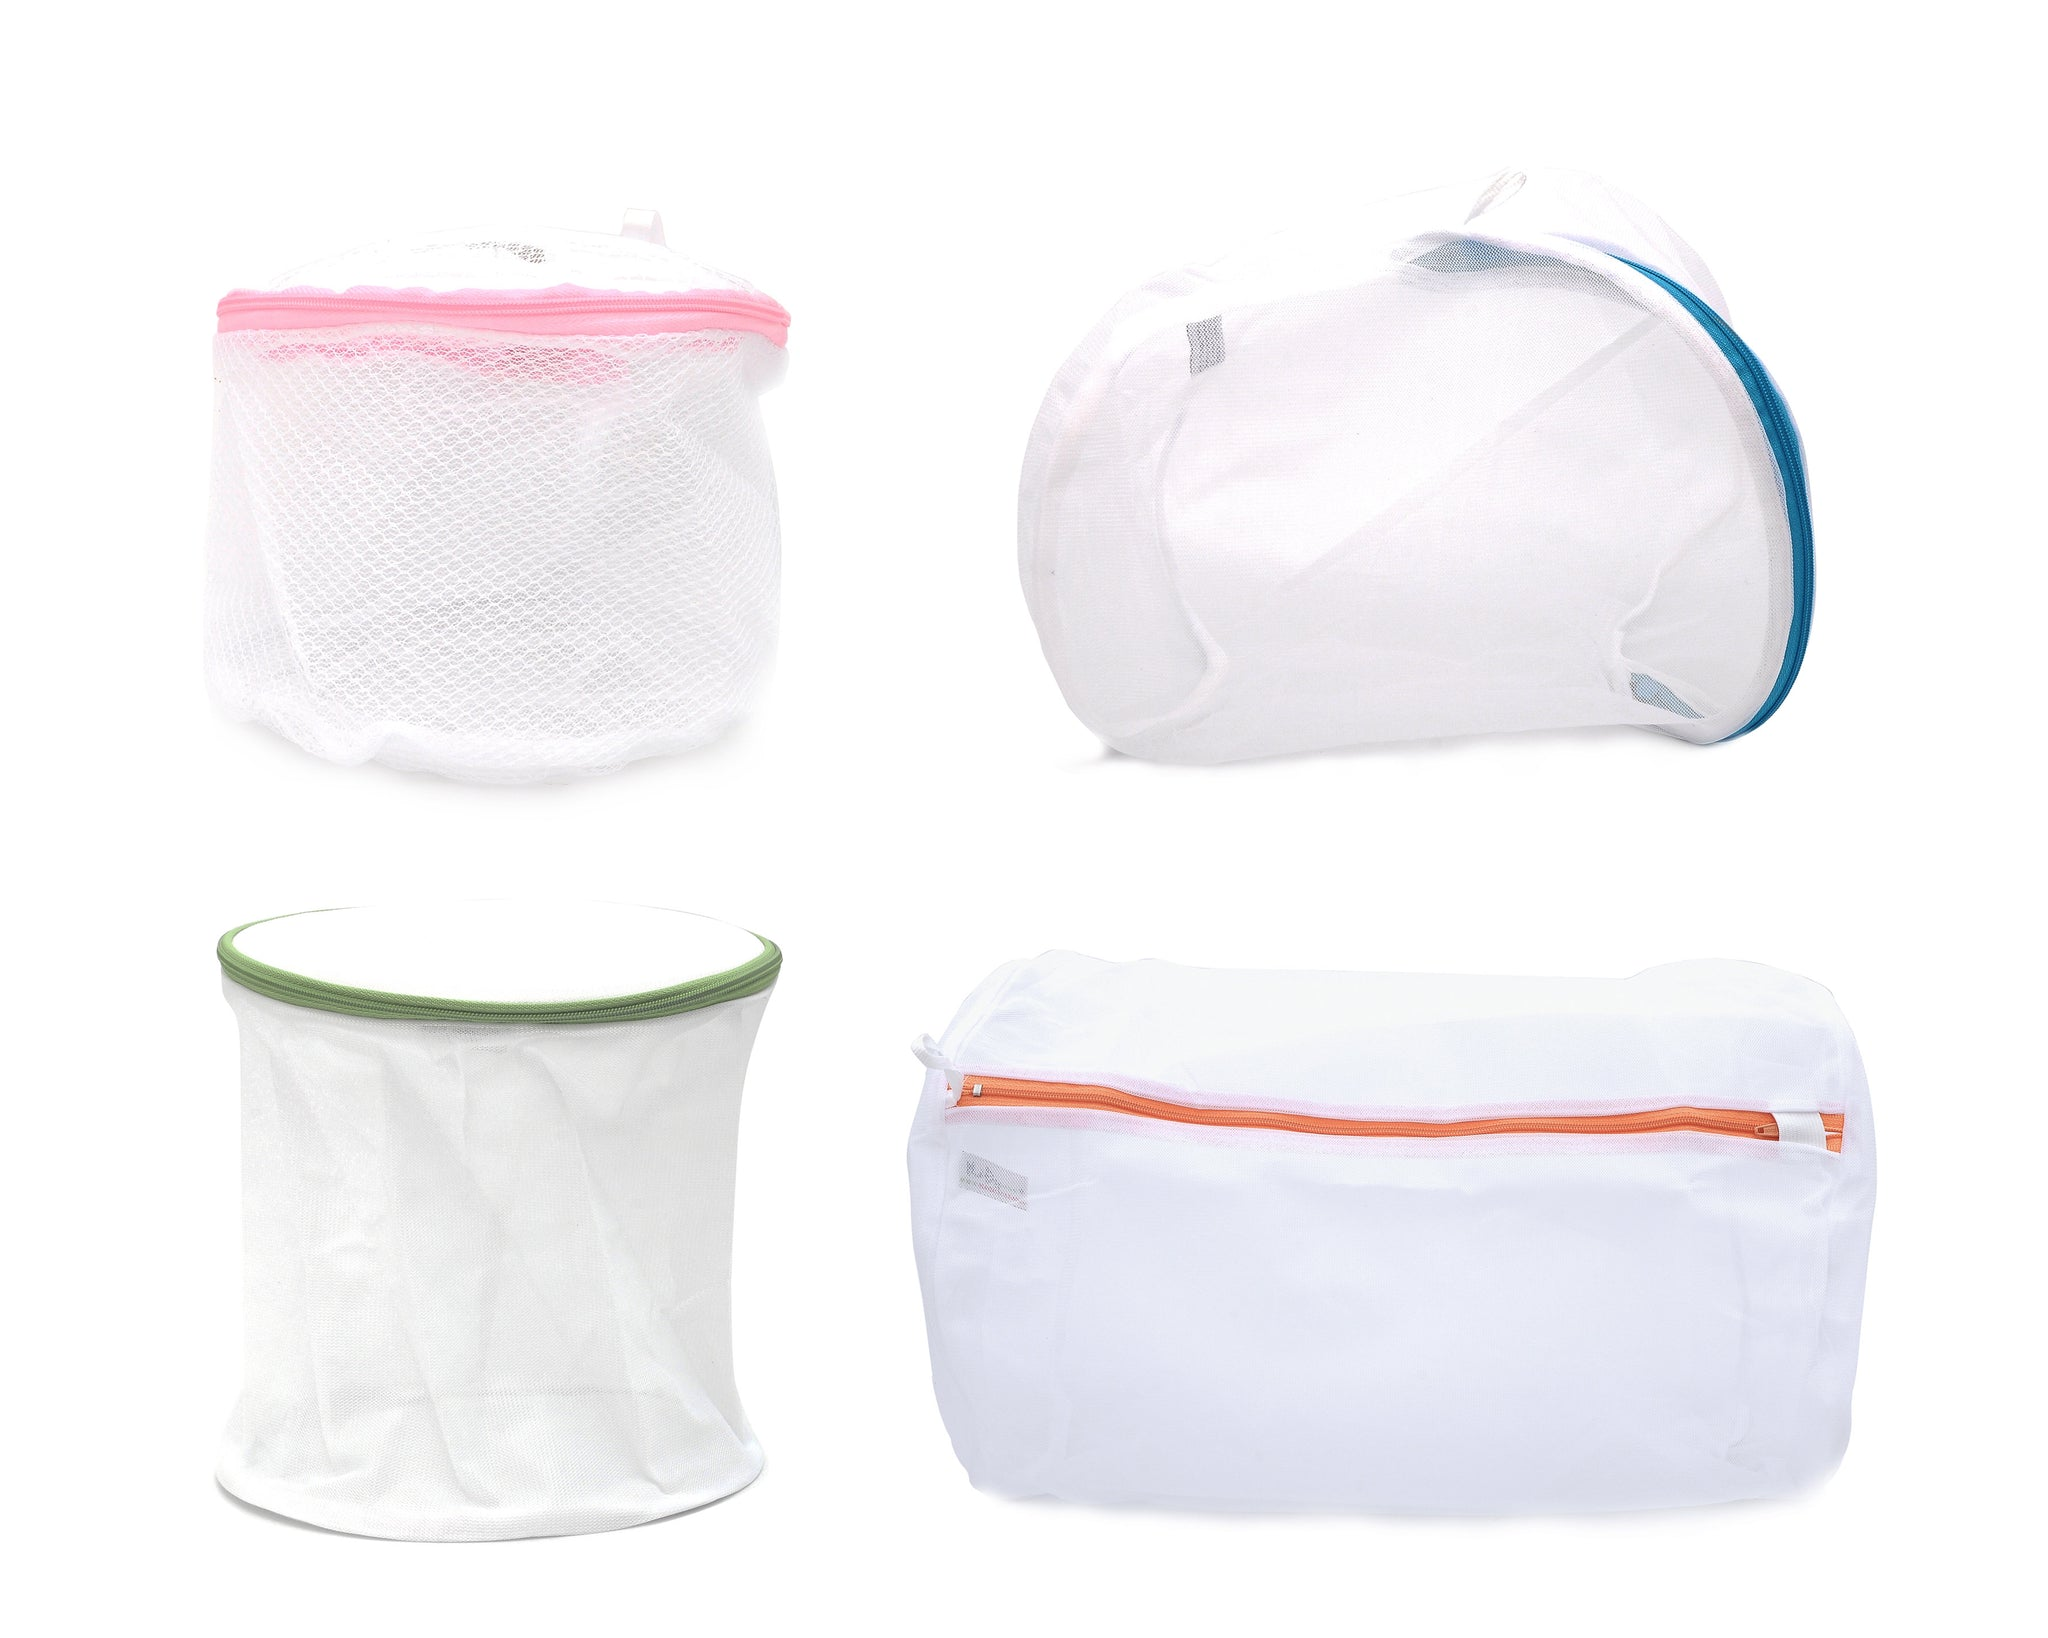 Laundry Zipper Mesh Washing Bags For Delicate Lingerie Socks Clothes Laundry